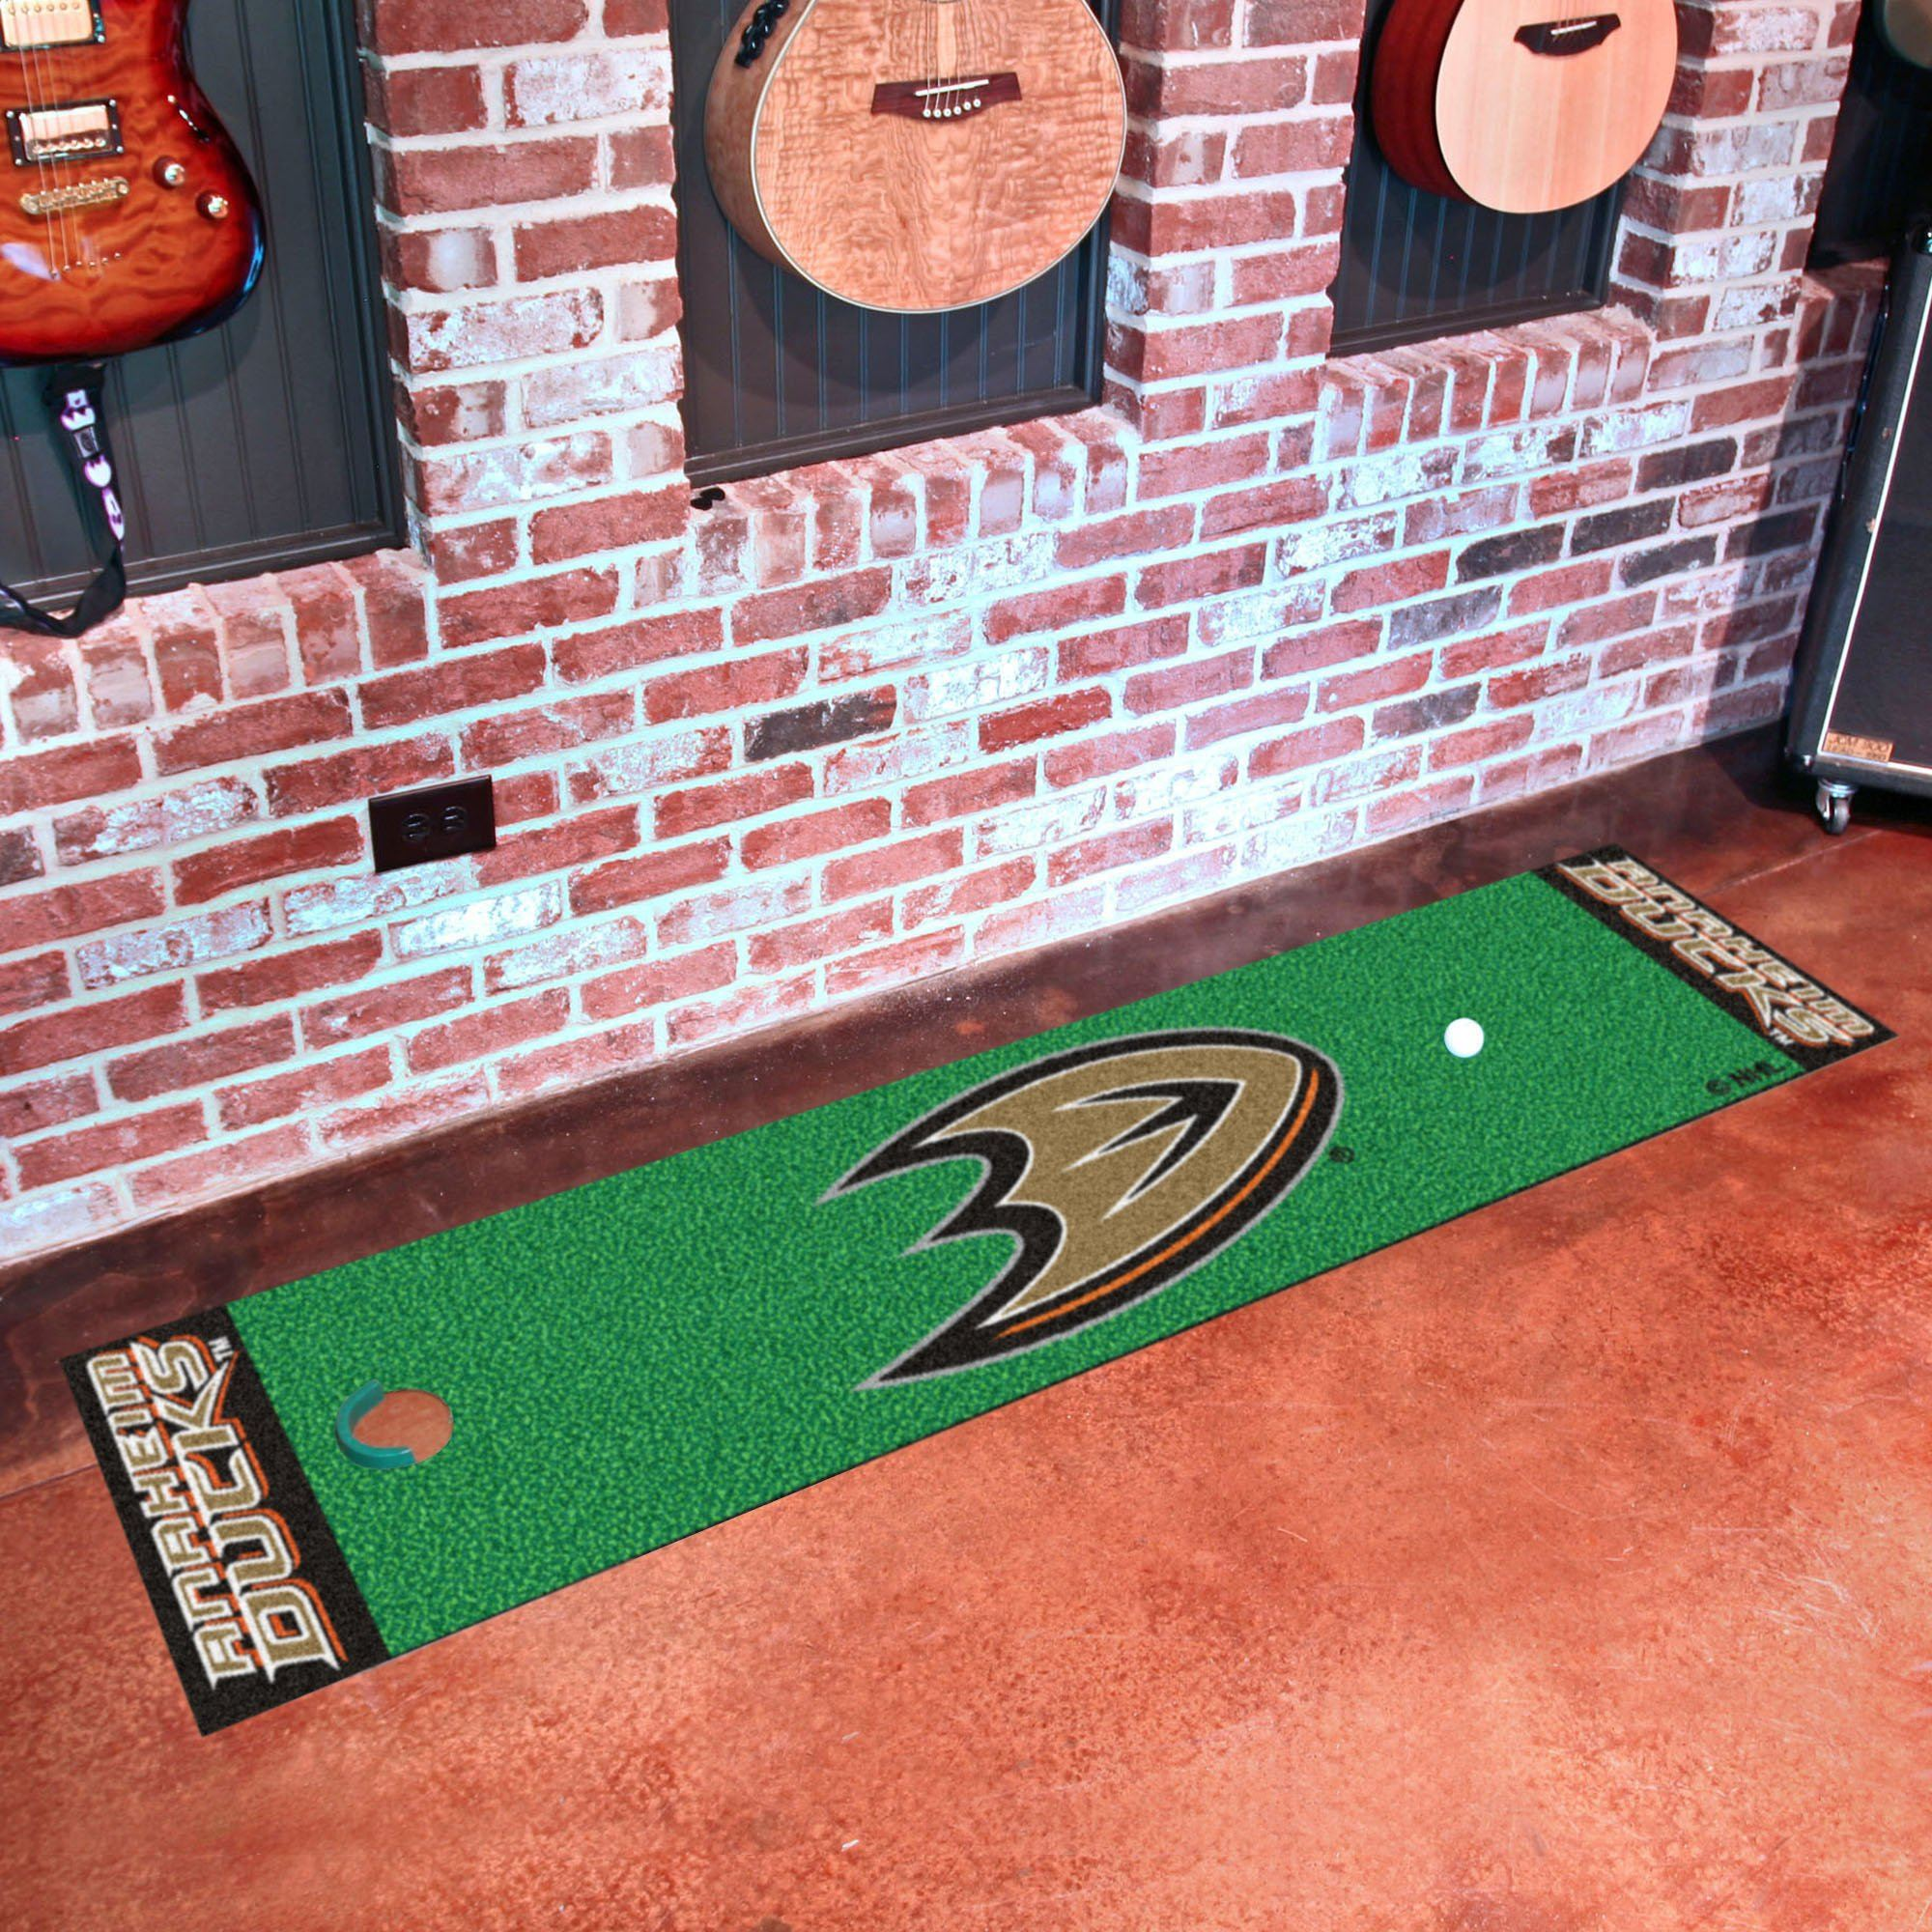 NHL - Putting Green Mat NHL Mats, Runner Mats, Putting Green Mat, NHL, Home Fan Mats New York Islanders